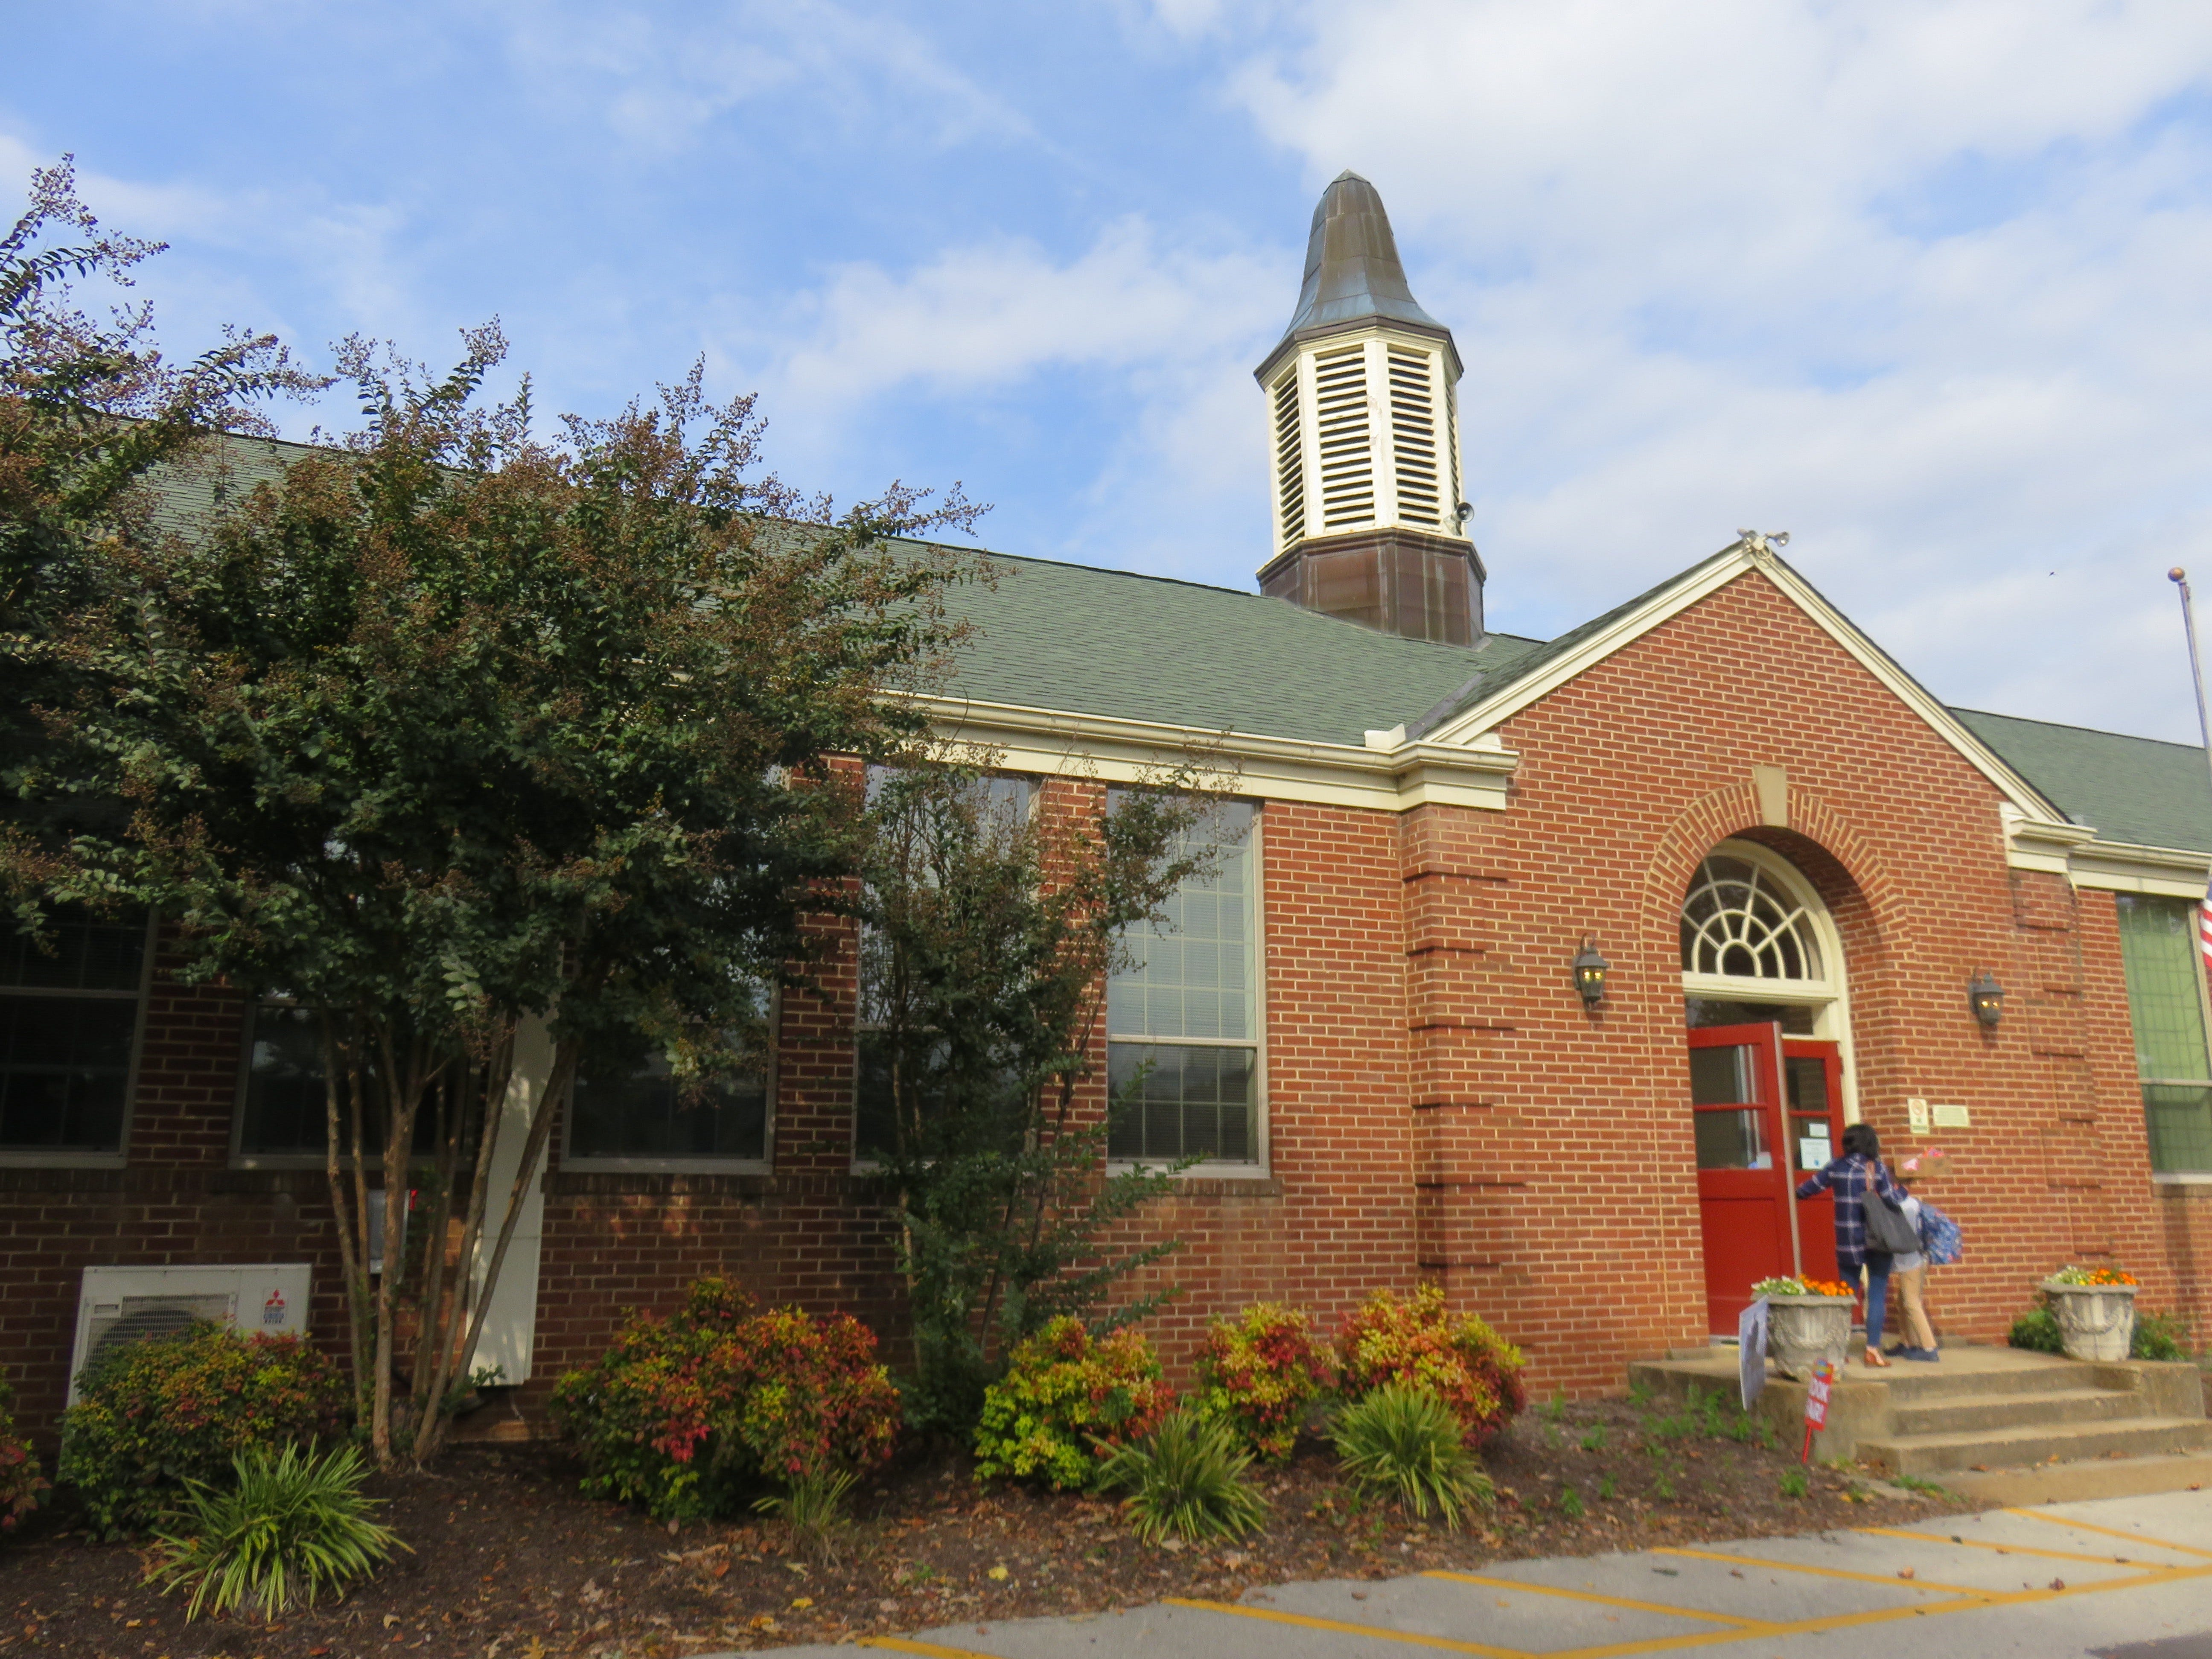 """Bearden Elementary School, shown on Oct. 31, 2018, features classic elementary school architecture. """"I like that it looks historic,"""" said first-grade teacher Ronda Hughes."""